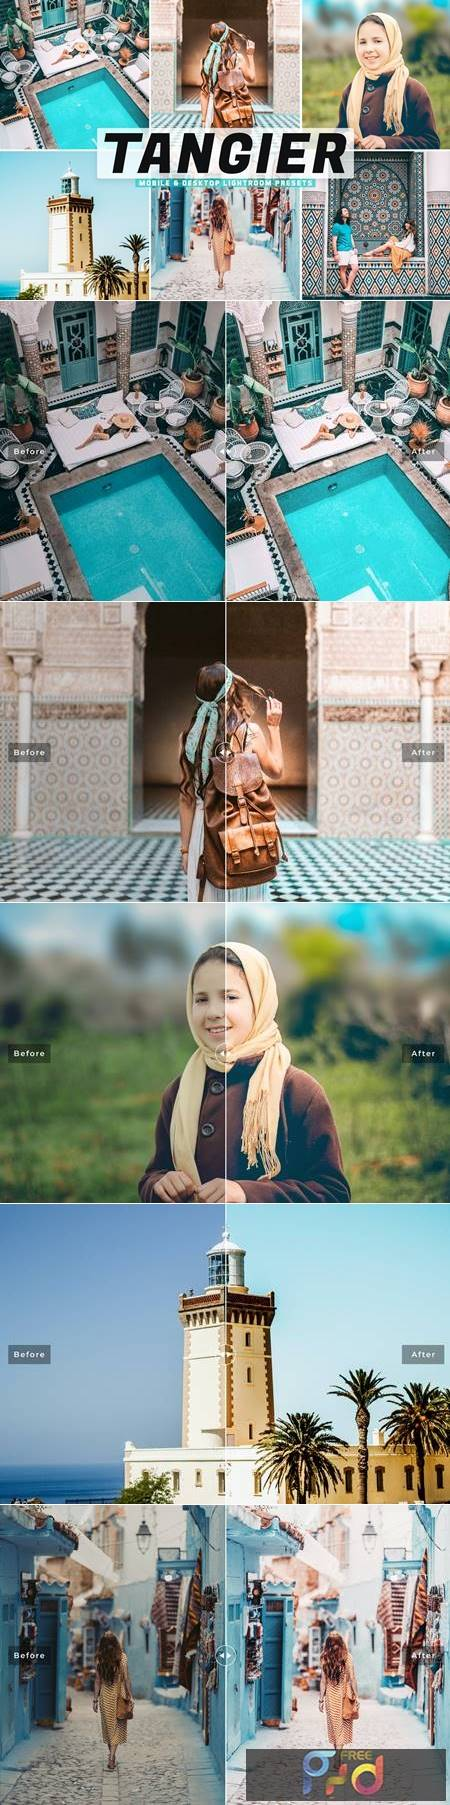 Tangier Mobile & Desktop Lightroom Presets 48XY342 1